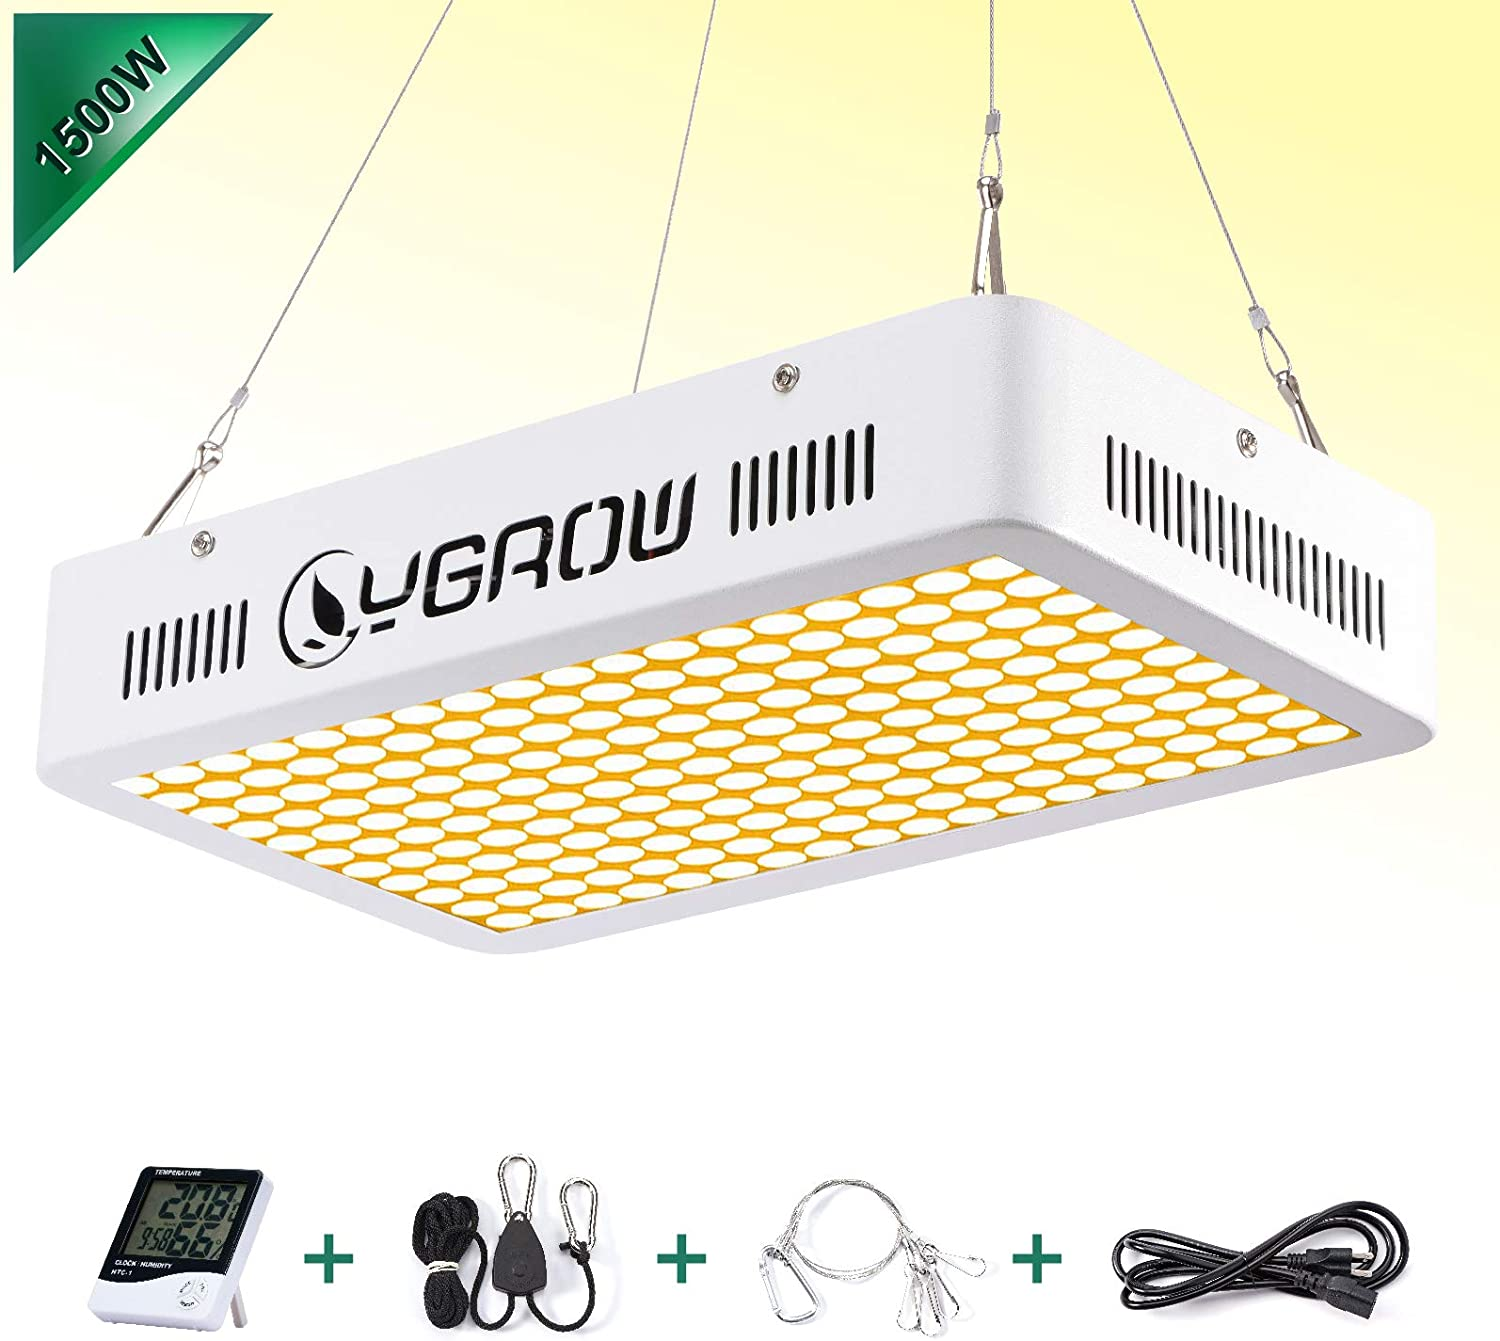 YGROW 1500W LED Grow Light Full Spectrum Grow Lamp with Daisy Chained Design, Reflector-Series Plant Grow Lights for Indoor Plants Veg and Flower